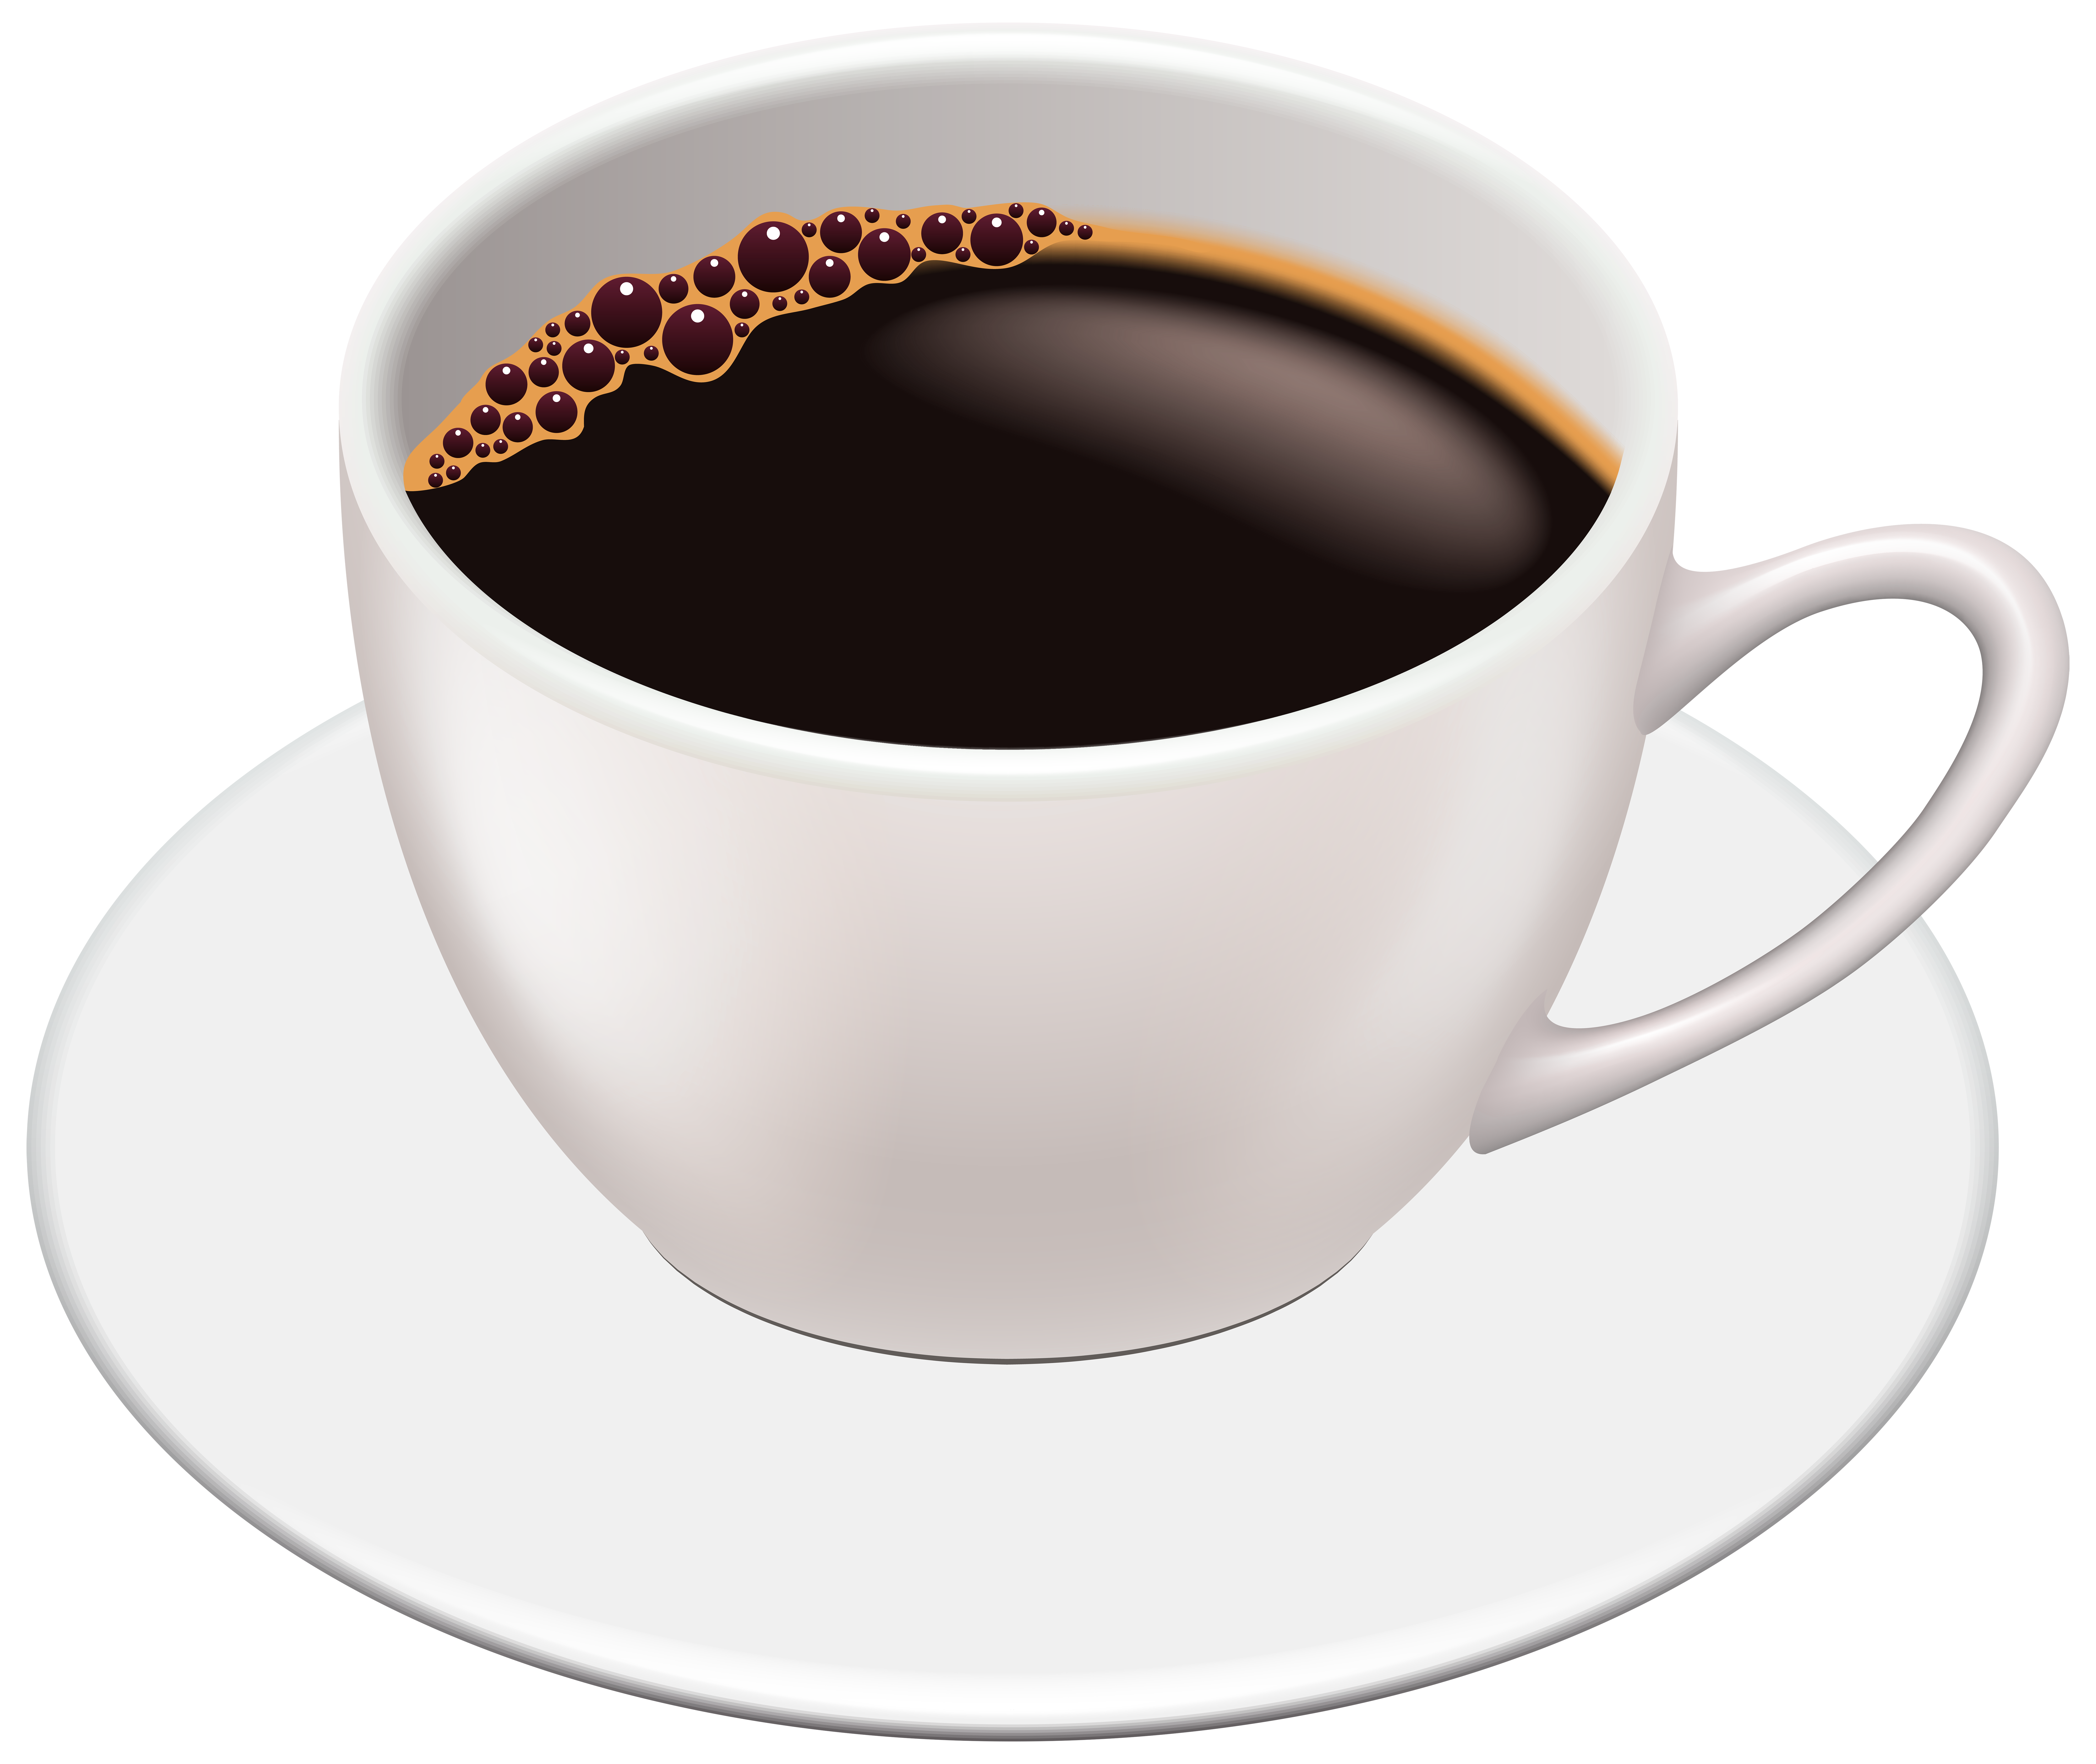 Turkish cappuccino cafe caff. Clipart coffee mocha